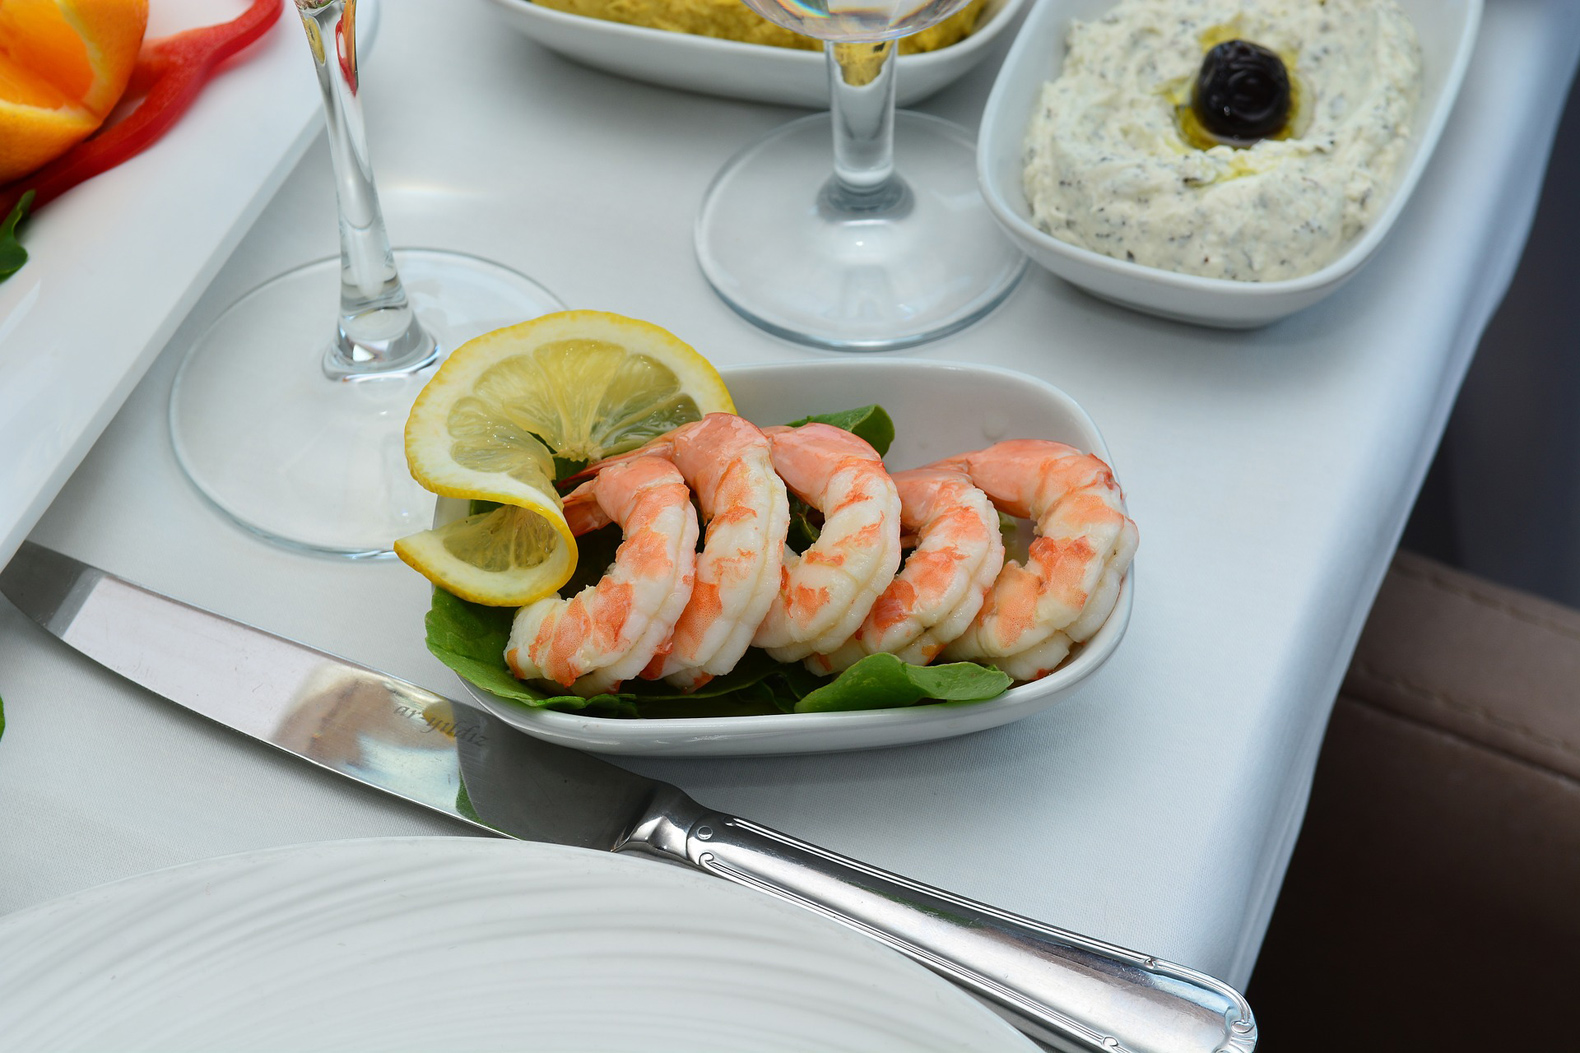 Cell-based meat could replicate and replace shrimp, lobster and crab